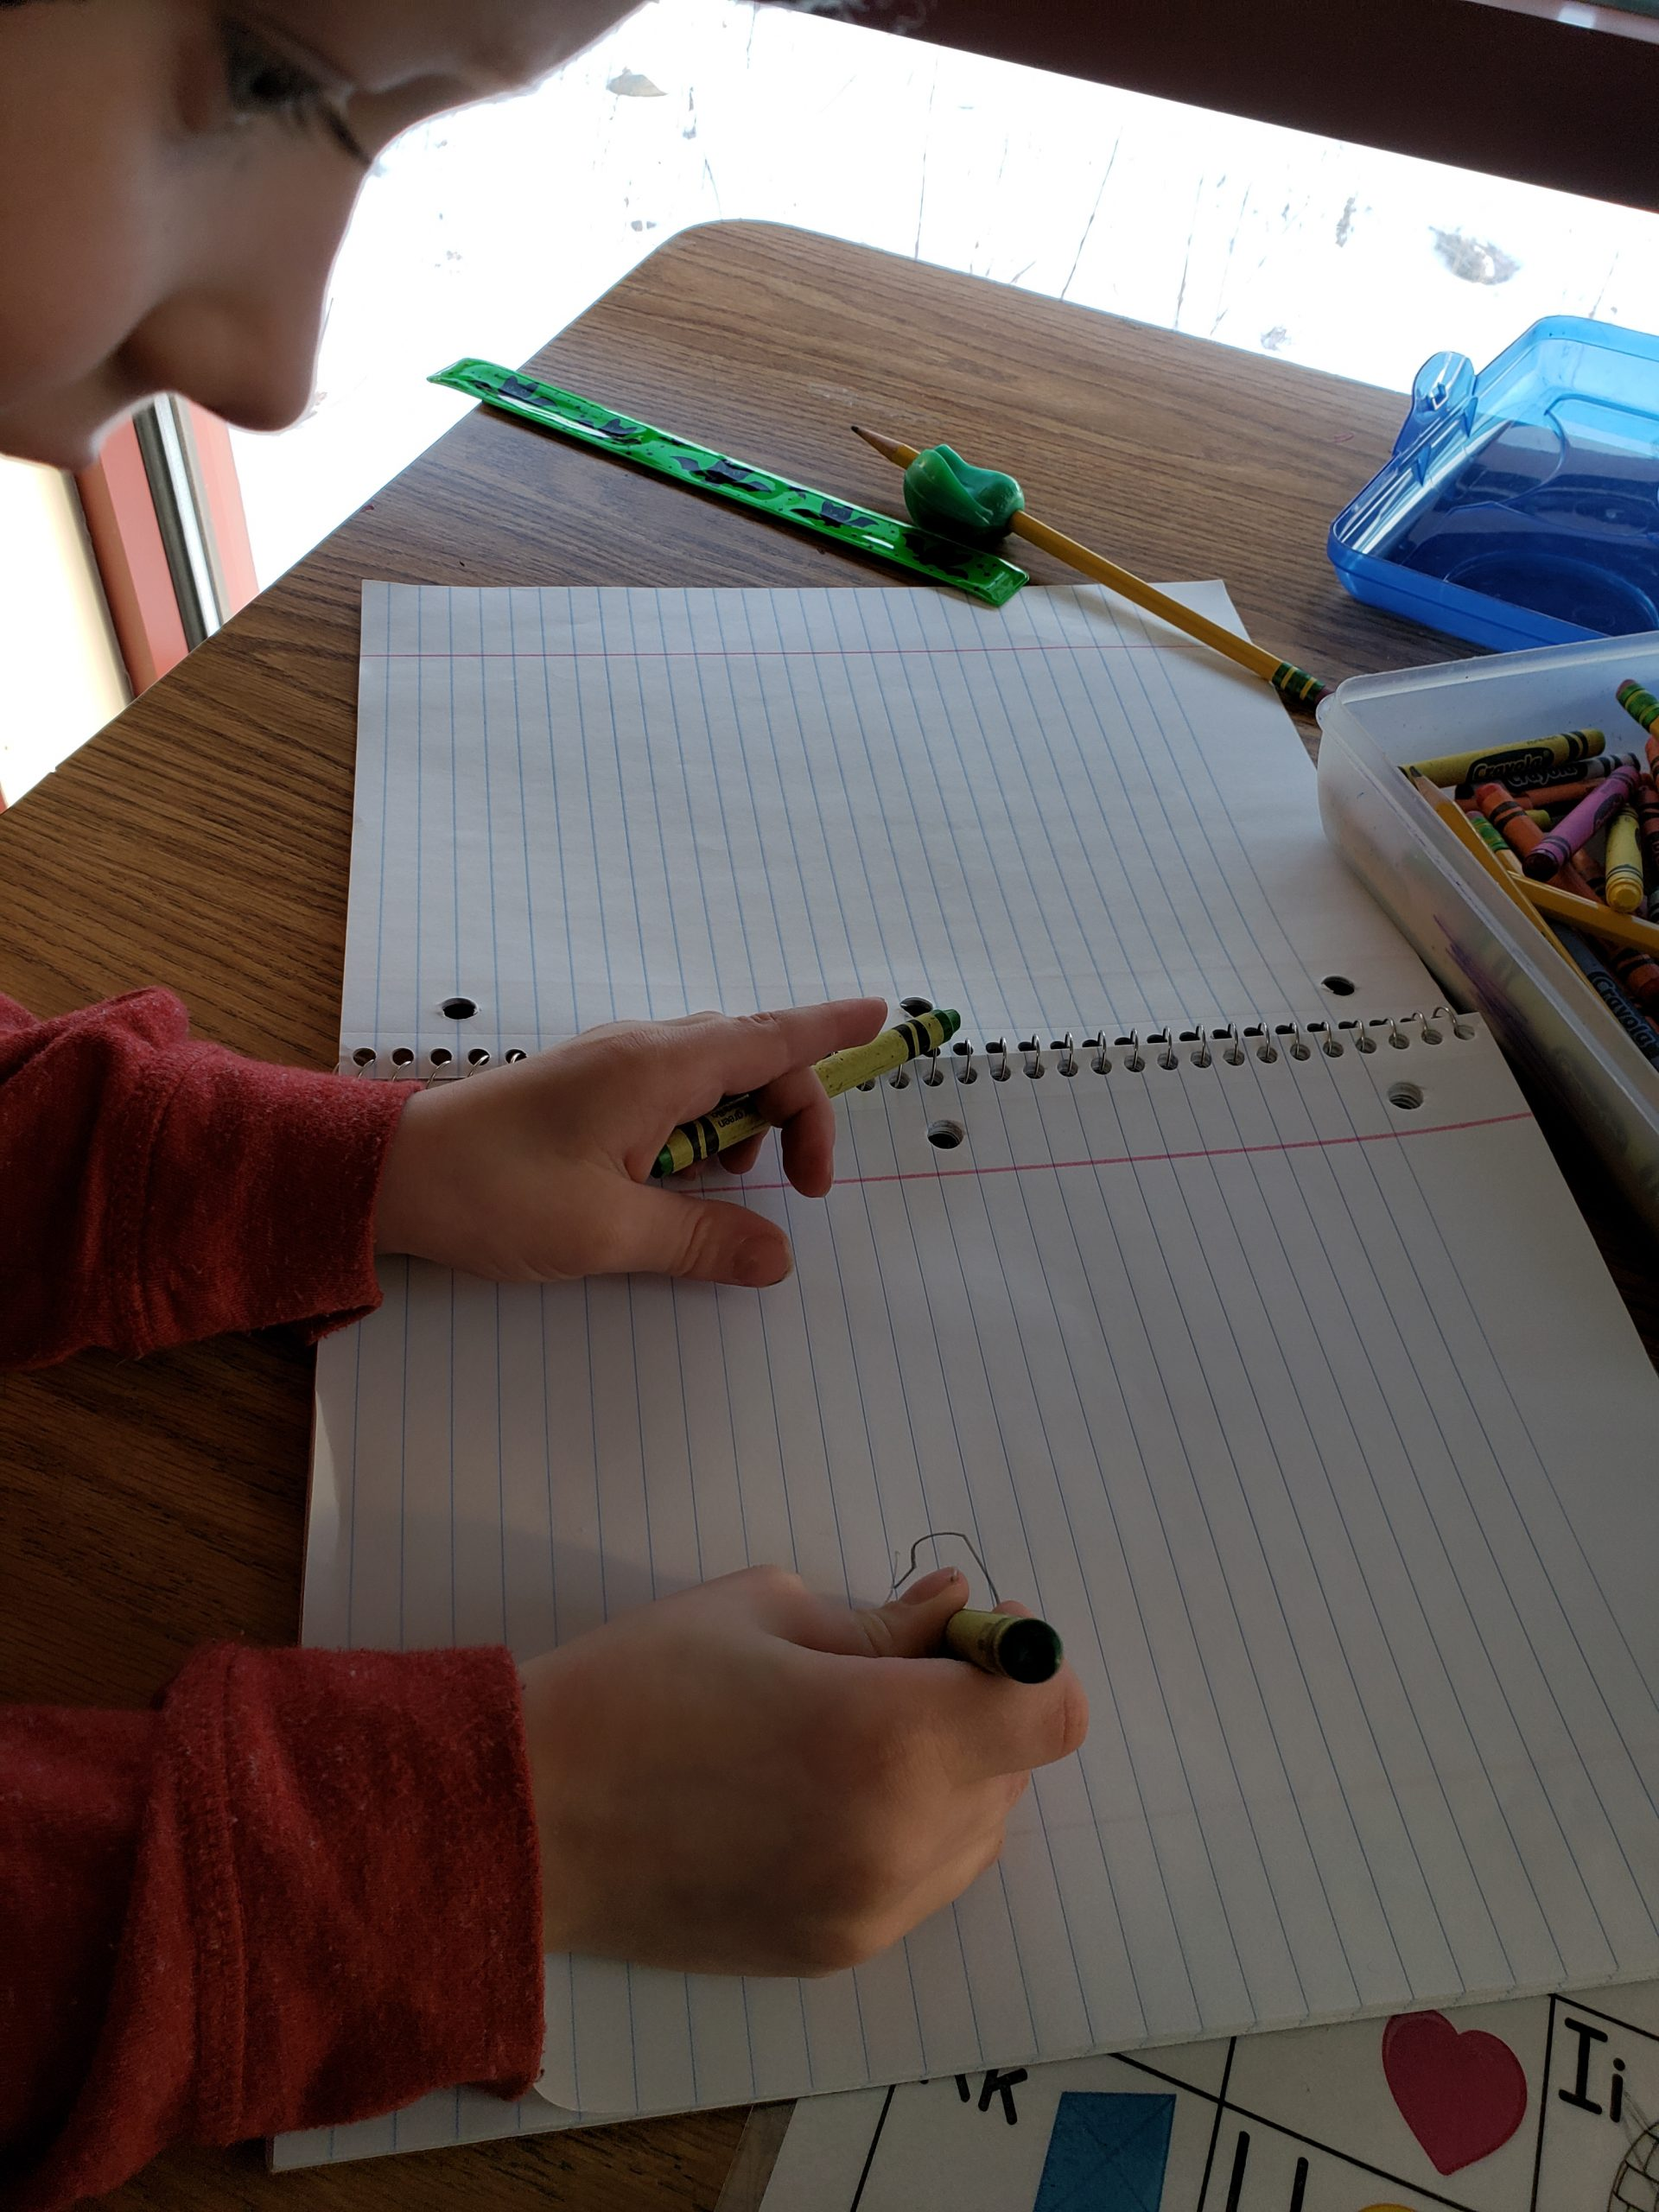 A young boy is drawing in a notebook with a crayon in each hand.